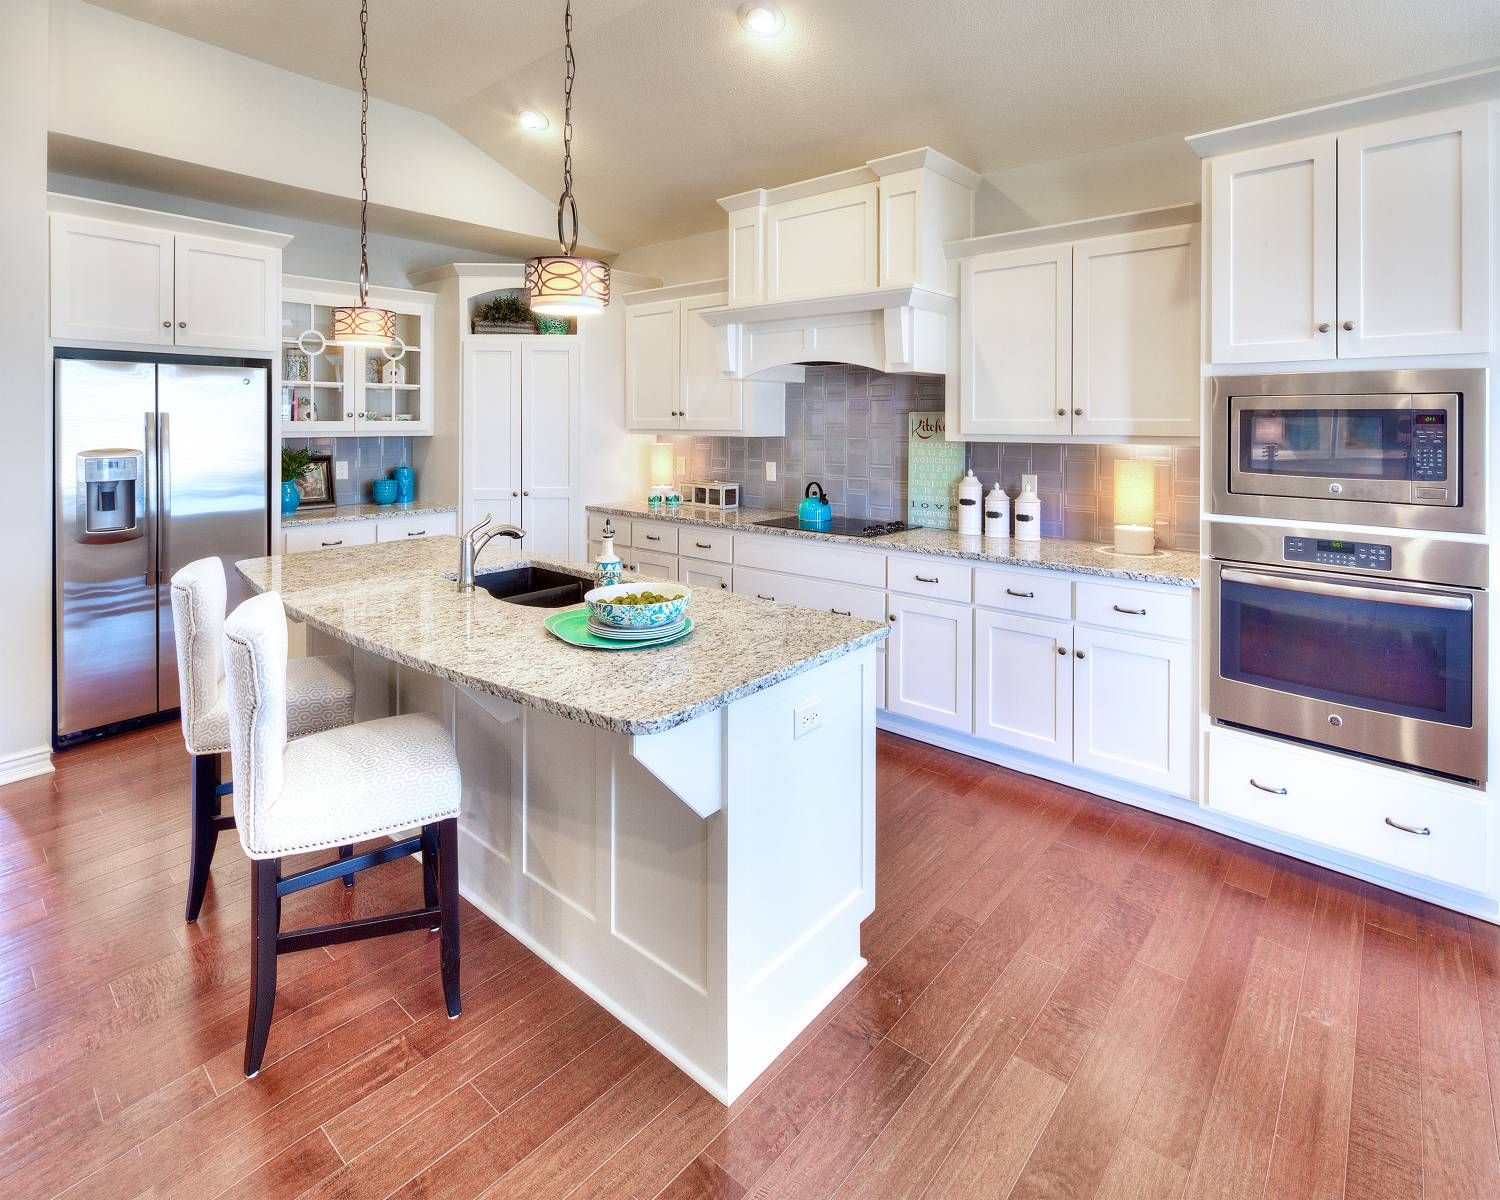 White cabinetry, light wood floor and stainless steel appliances in ...